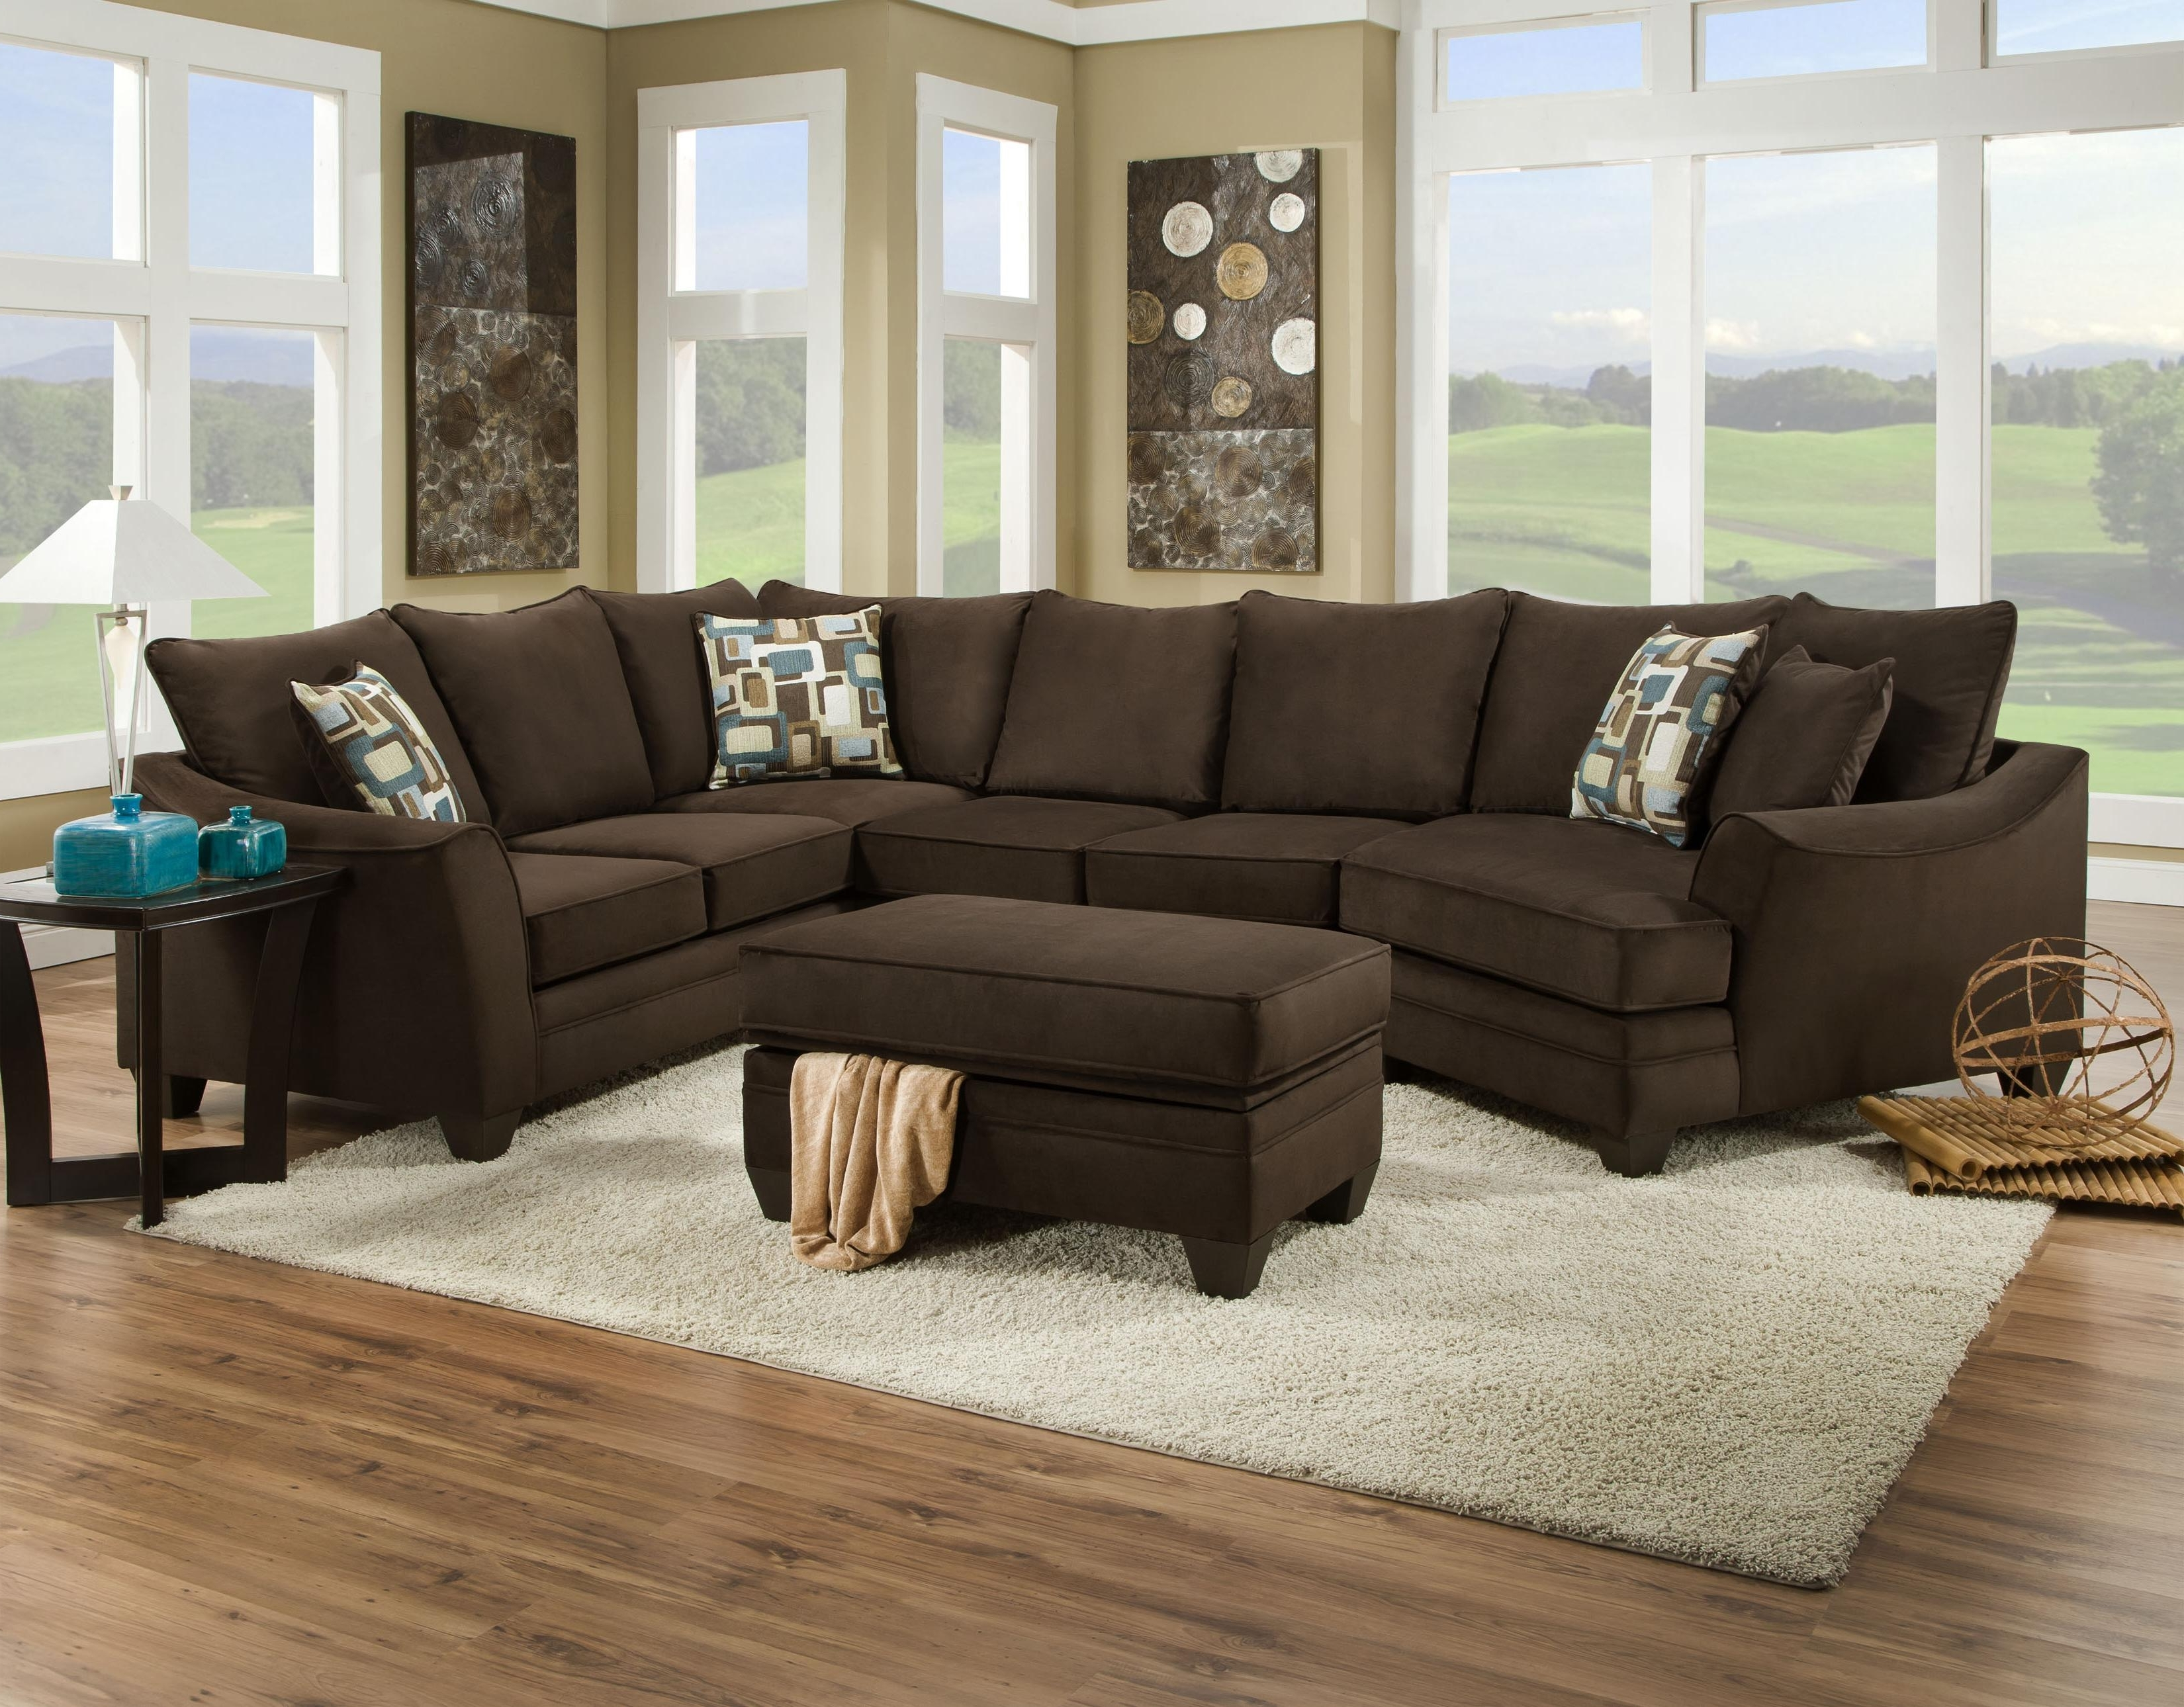 American Furniture 3810 Sectional Sofa That Seats 5 With Left Side Throughout Well Known North Carolina Sectional Sofas (Gallery 10 of 20)